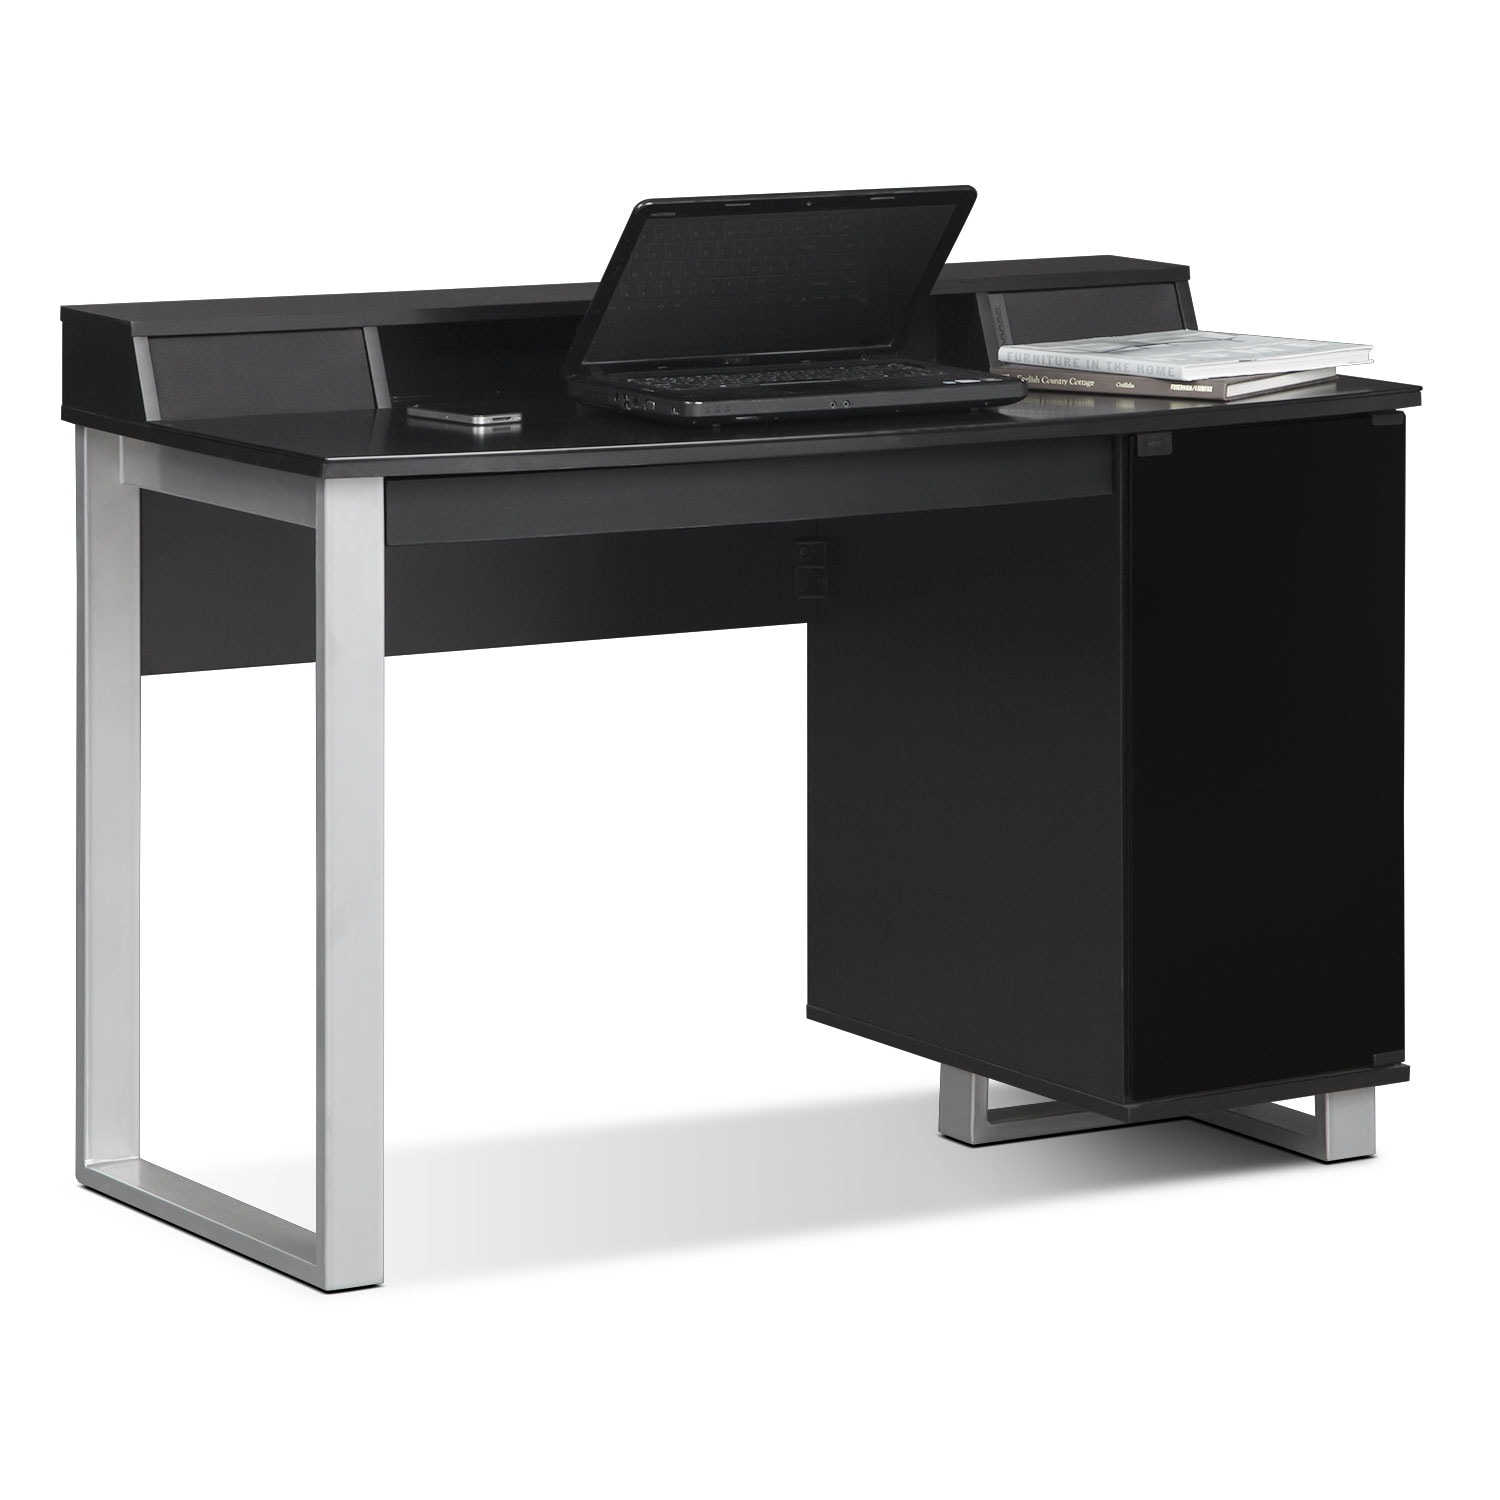 Home Office Furniture - Pacer Desk with Sound - Black